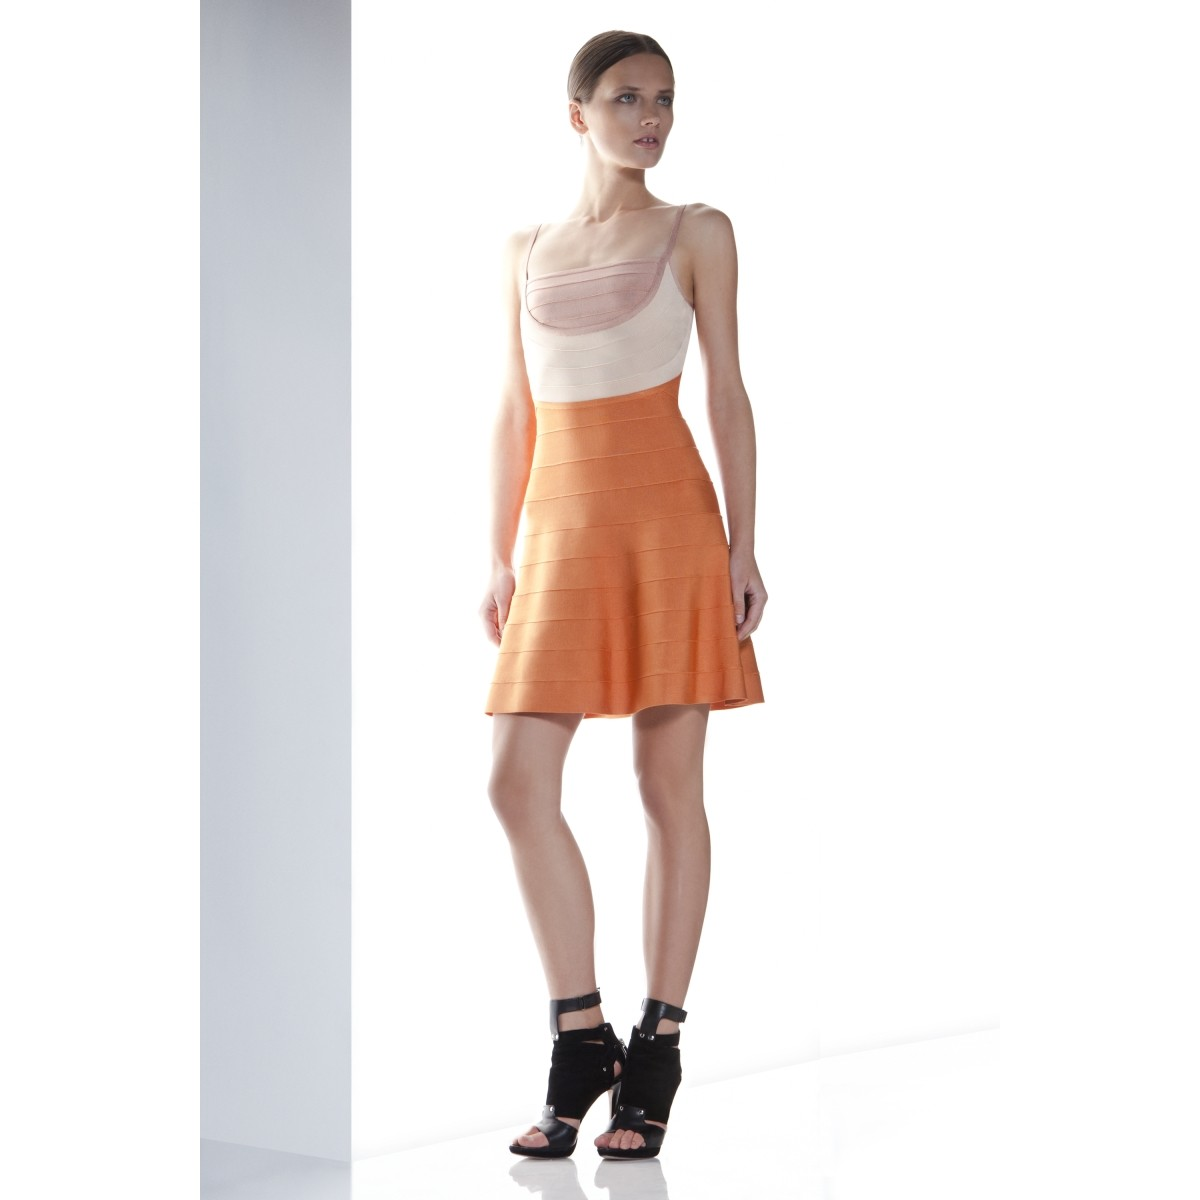 Herve Leger Britt Orange Colorblocked Dress